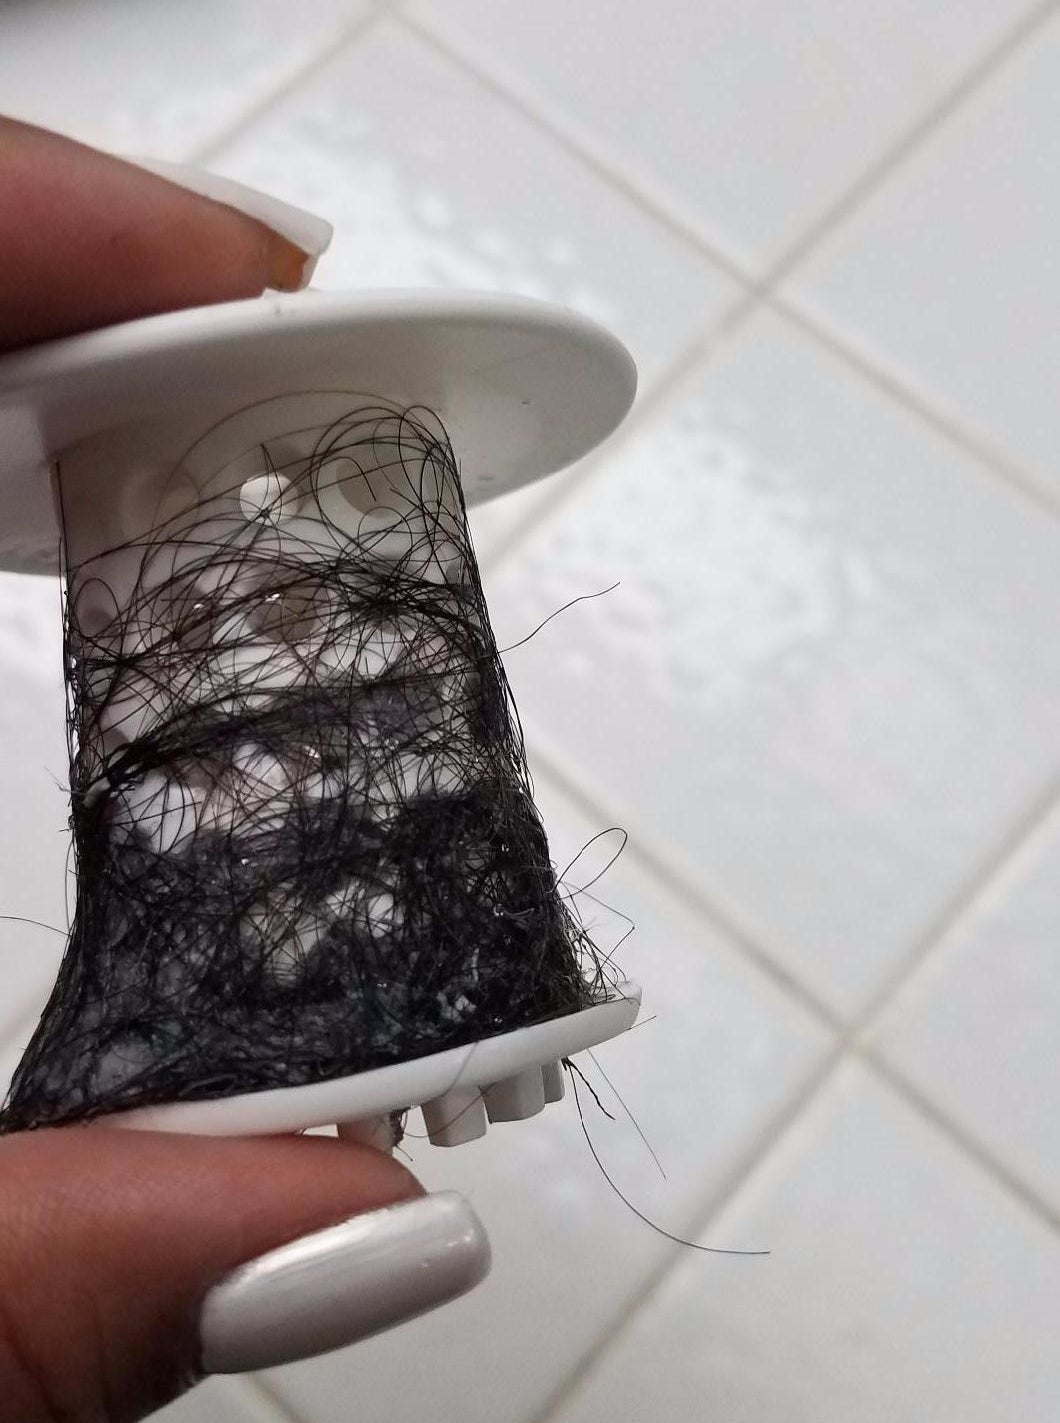 Same reviewer holding the TubShroom covered in hair